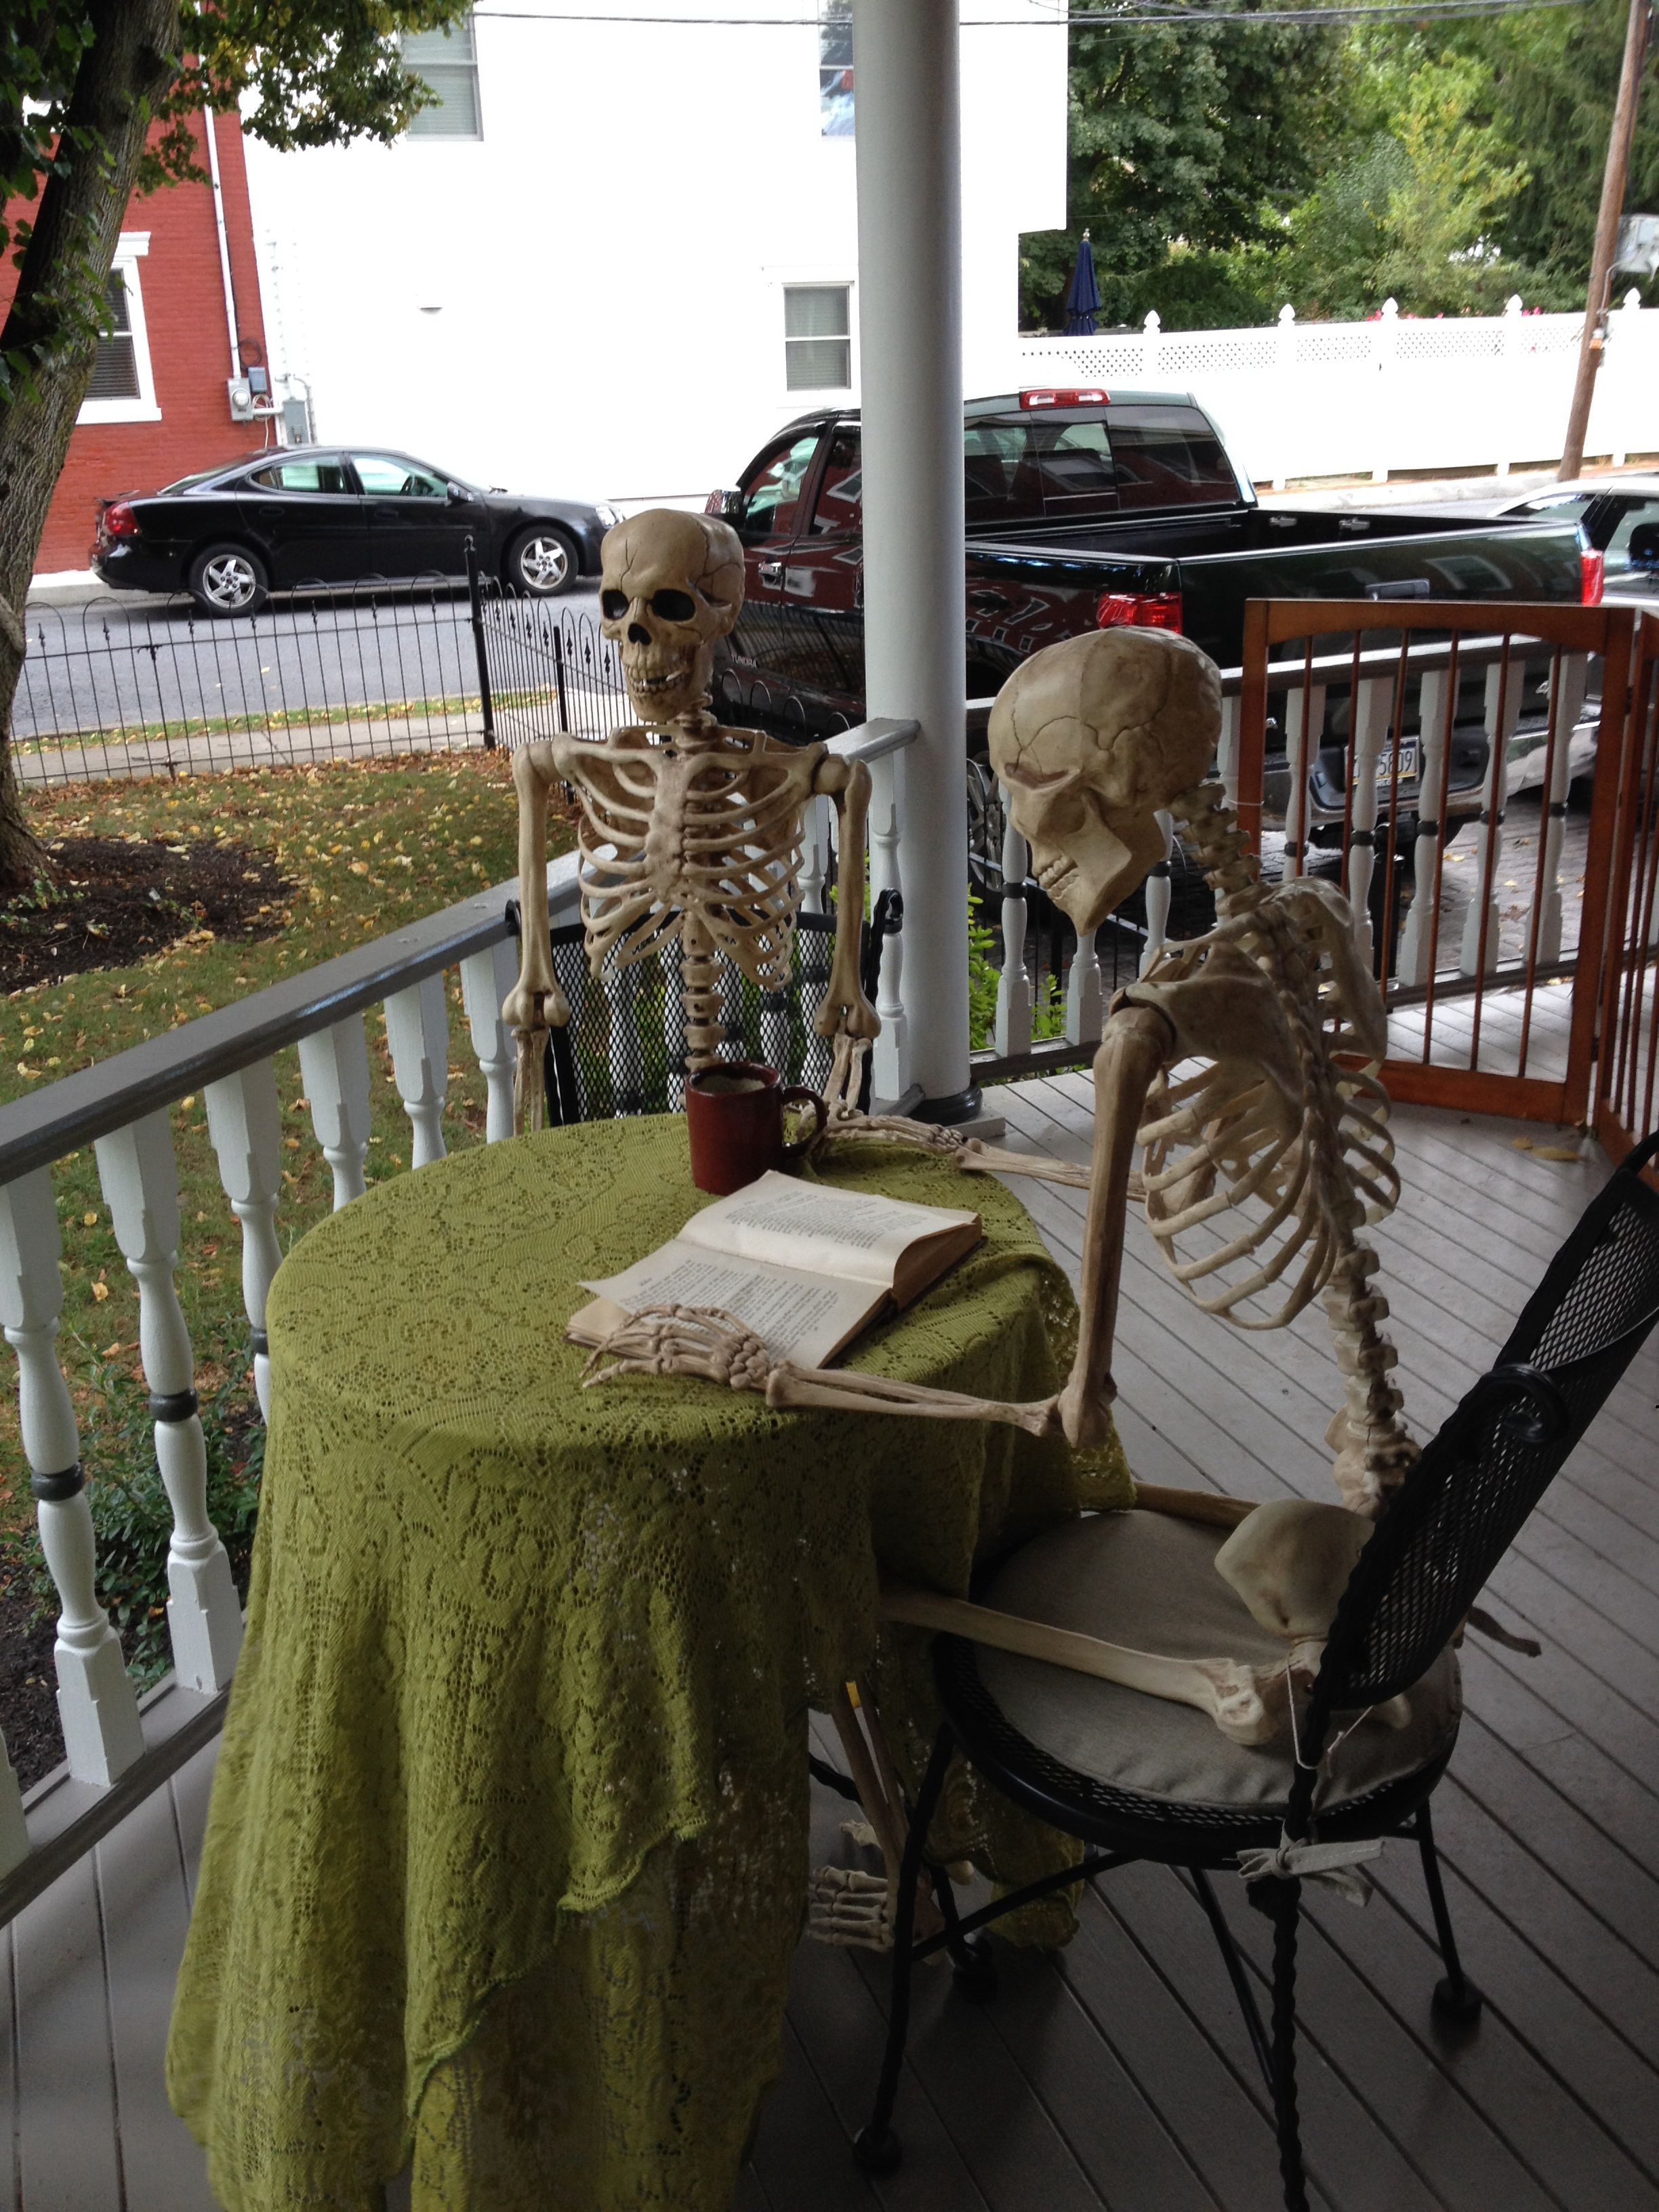 Our Yearly Halloween Guests Enjoy The Porch Of Our Dead